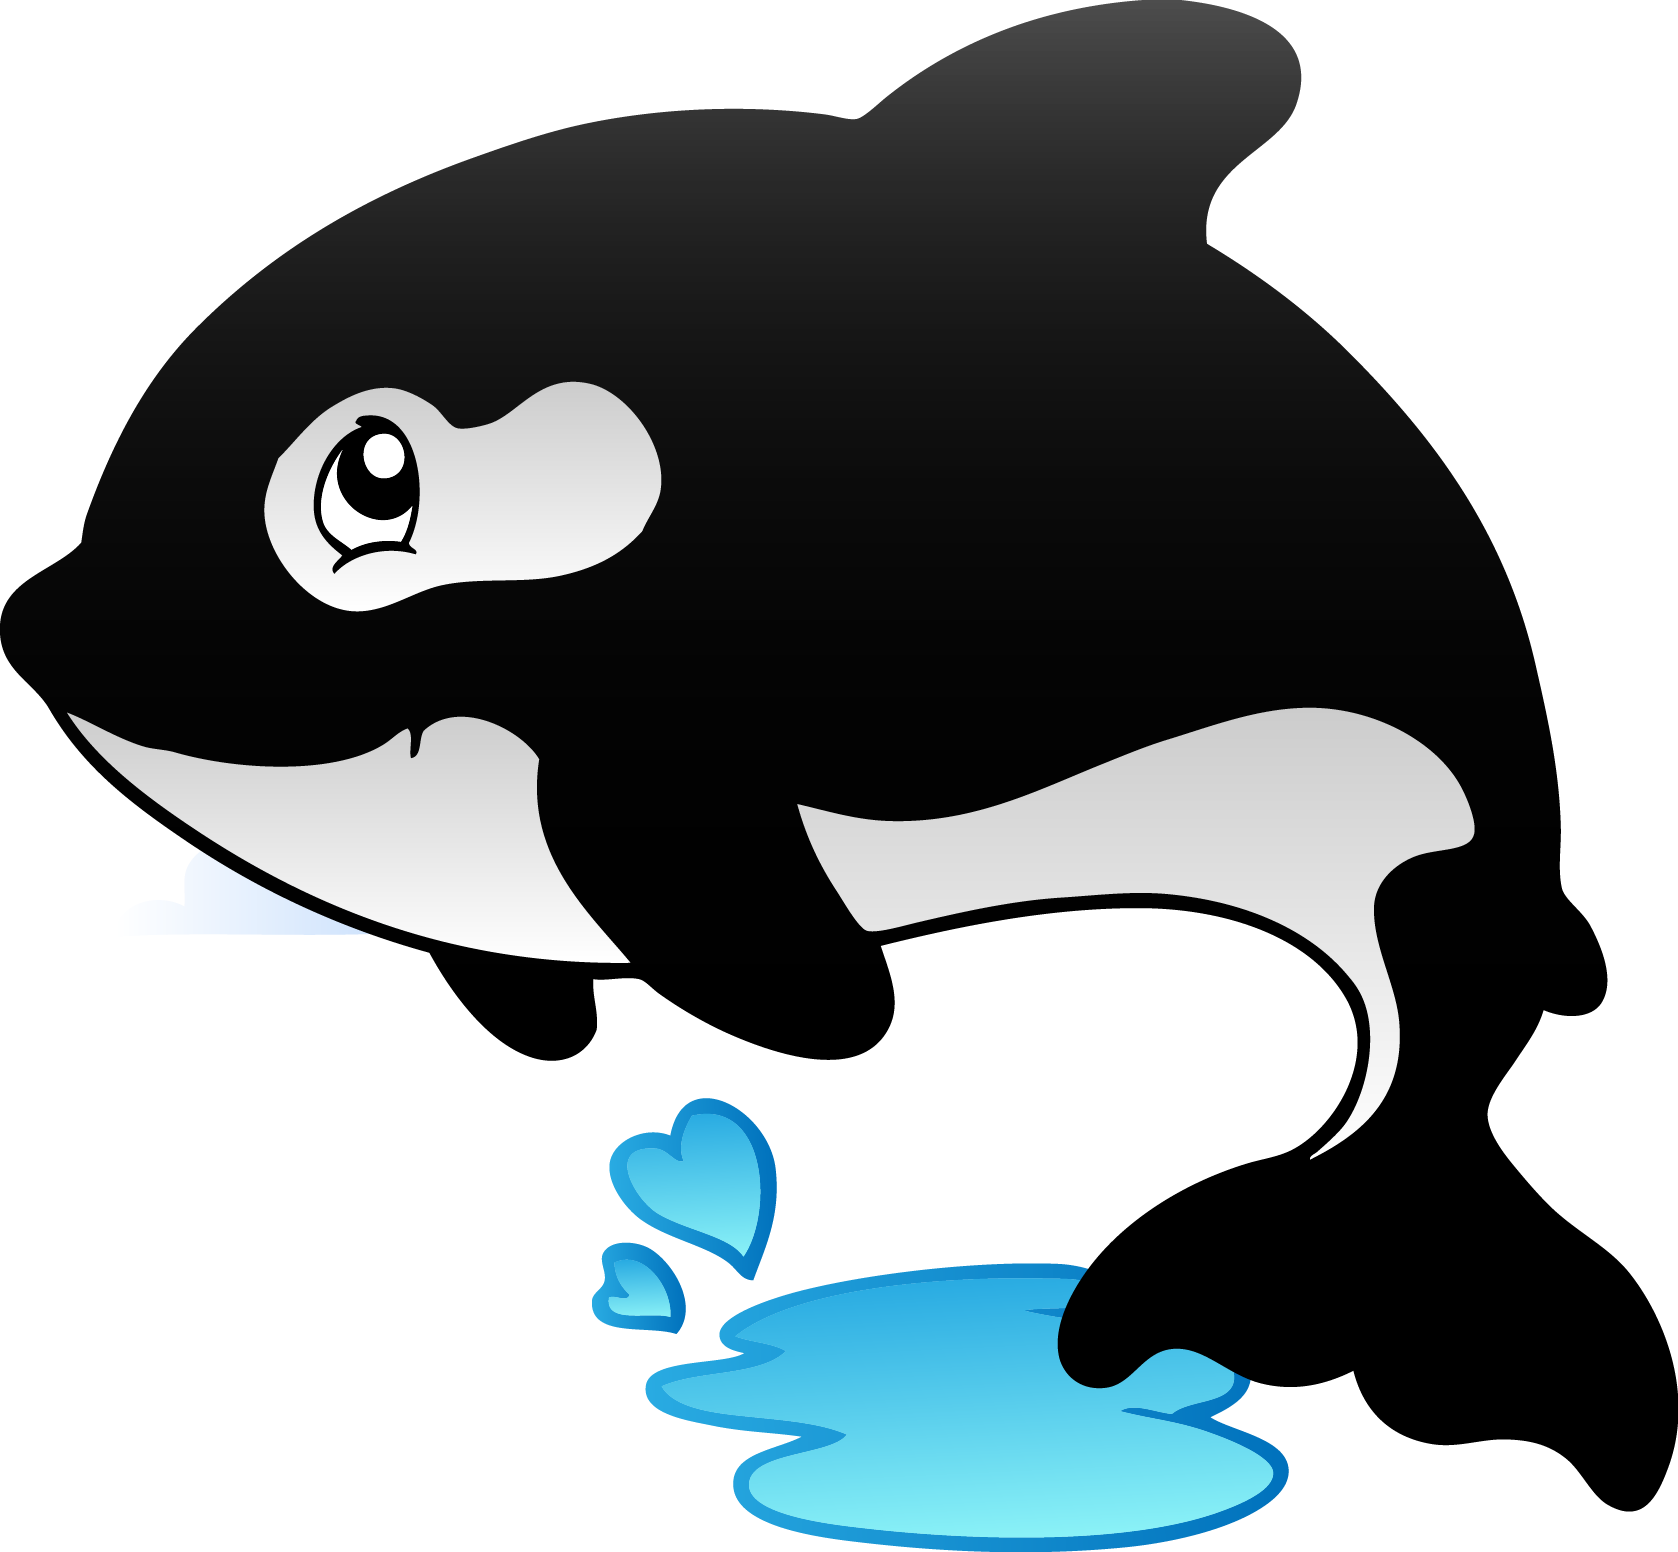 Killer Whale Birthday Cake Balloon - Cute Fish Clipart (1678x1552)